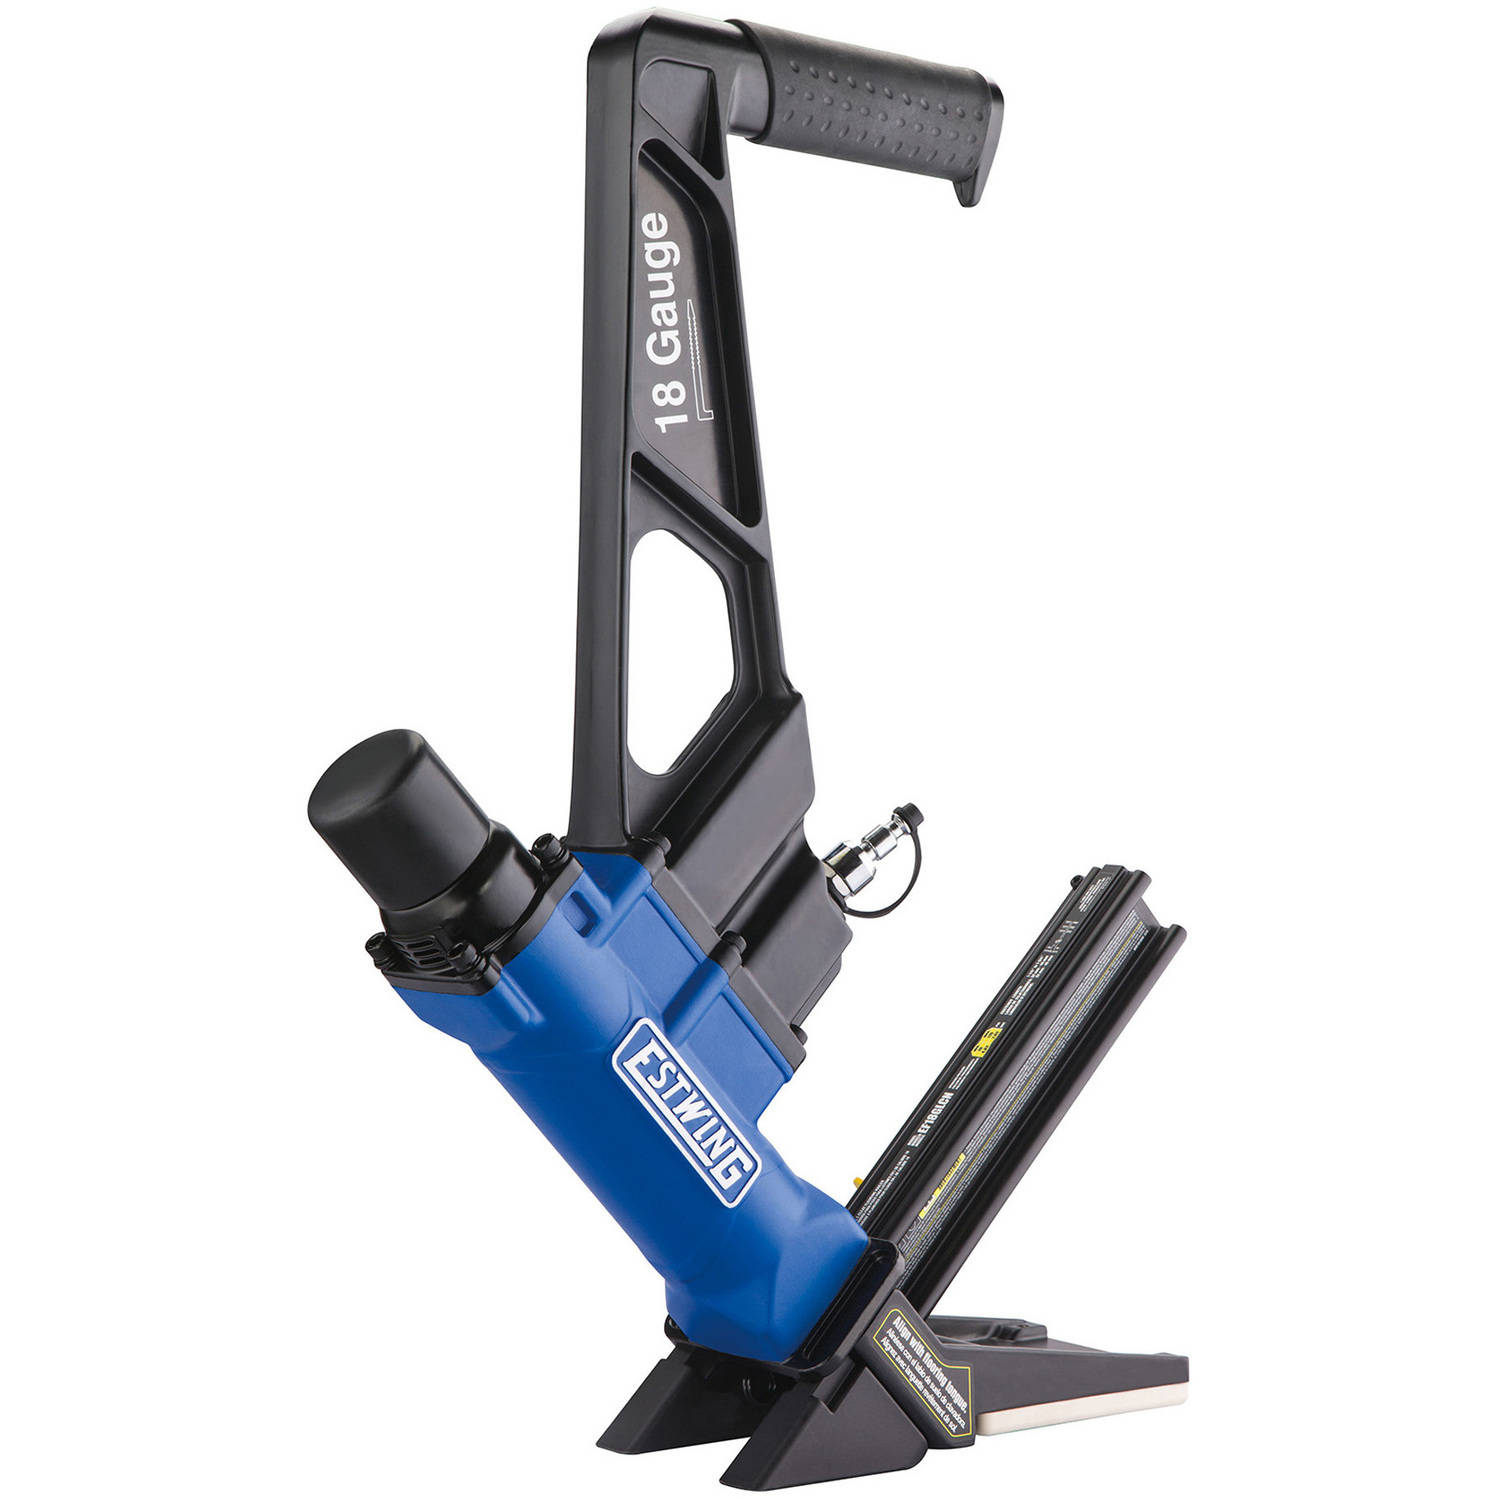 Estwing EF18GLCN Pneumatic 18-Gauge L-Cleat Flooring Nailer with Bag by Prime Global Products